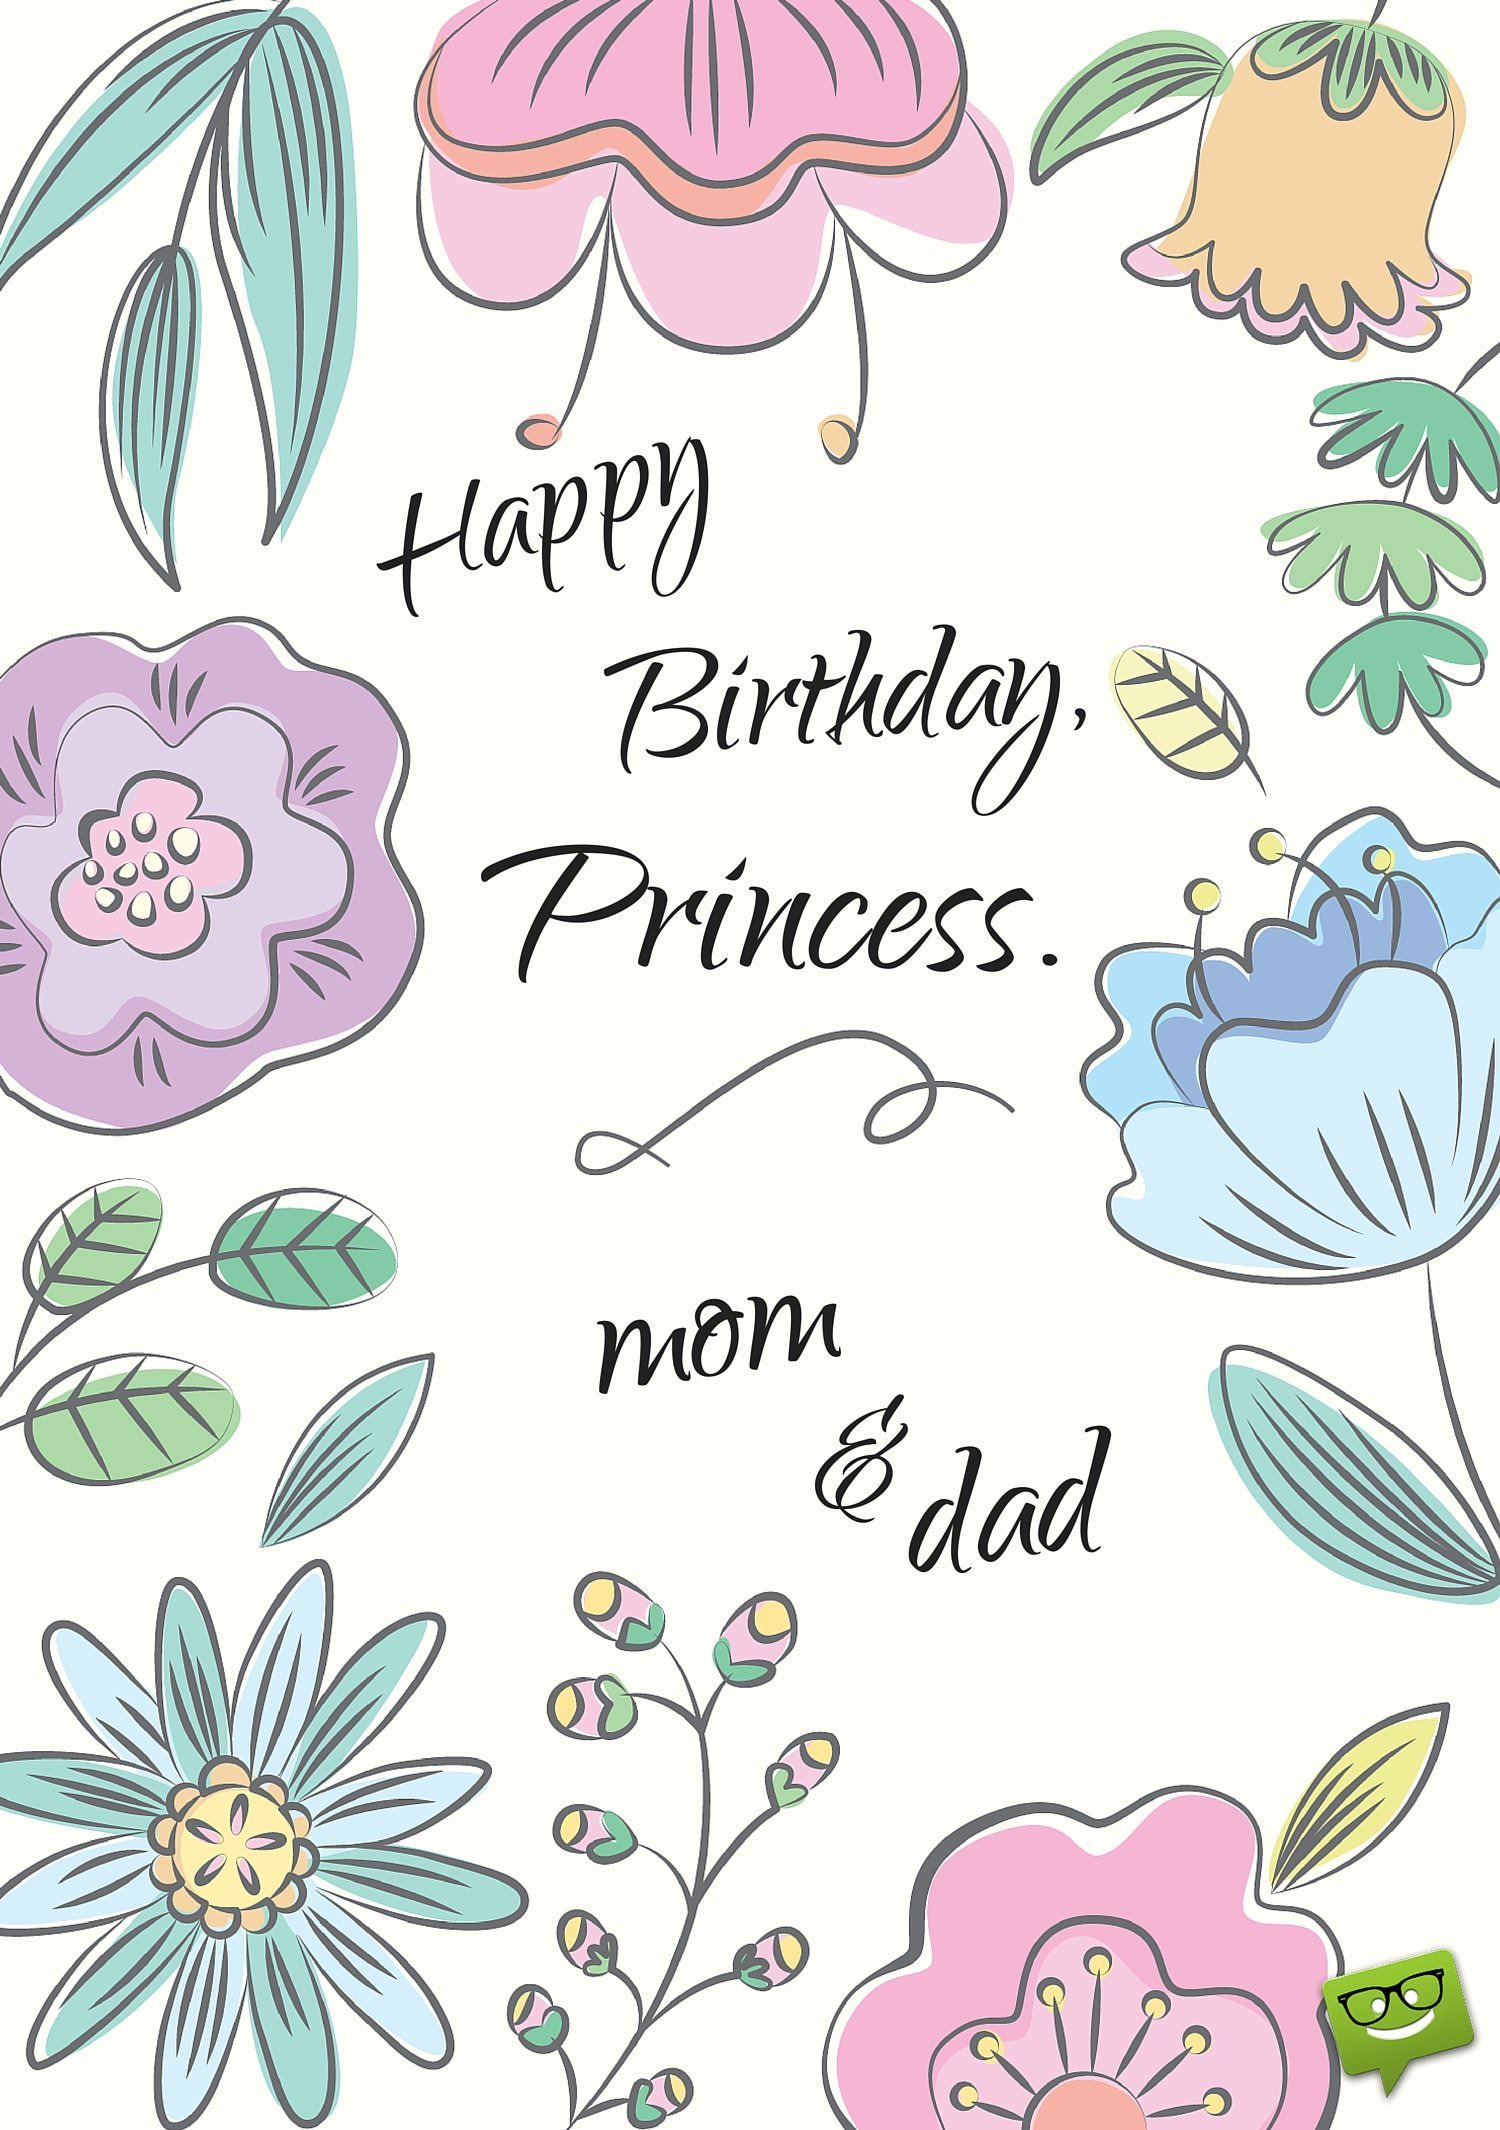 mother wish to her daughter birthday ; Happy-Birthday-princess